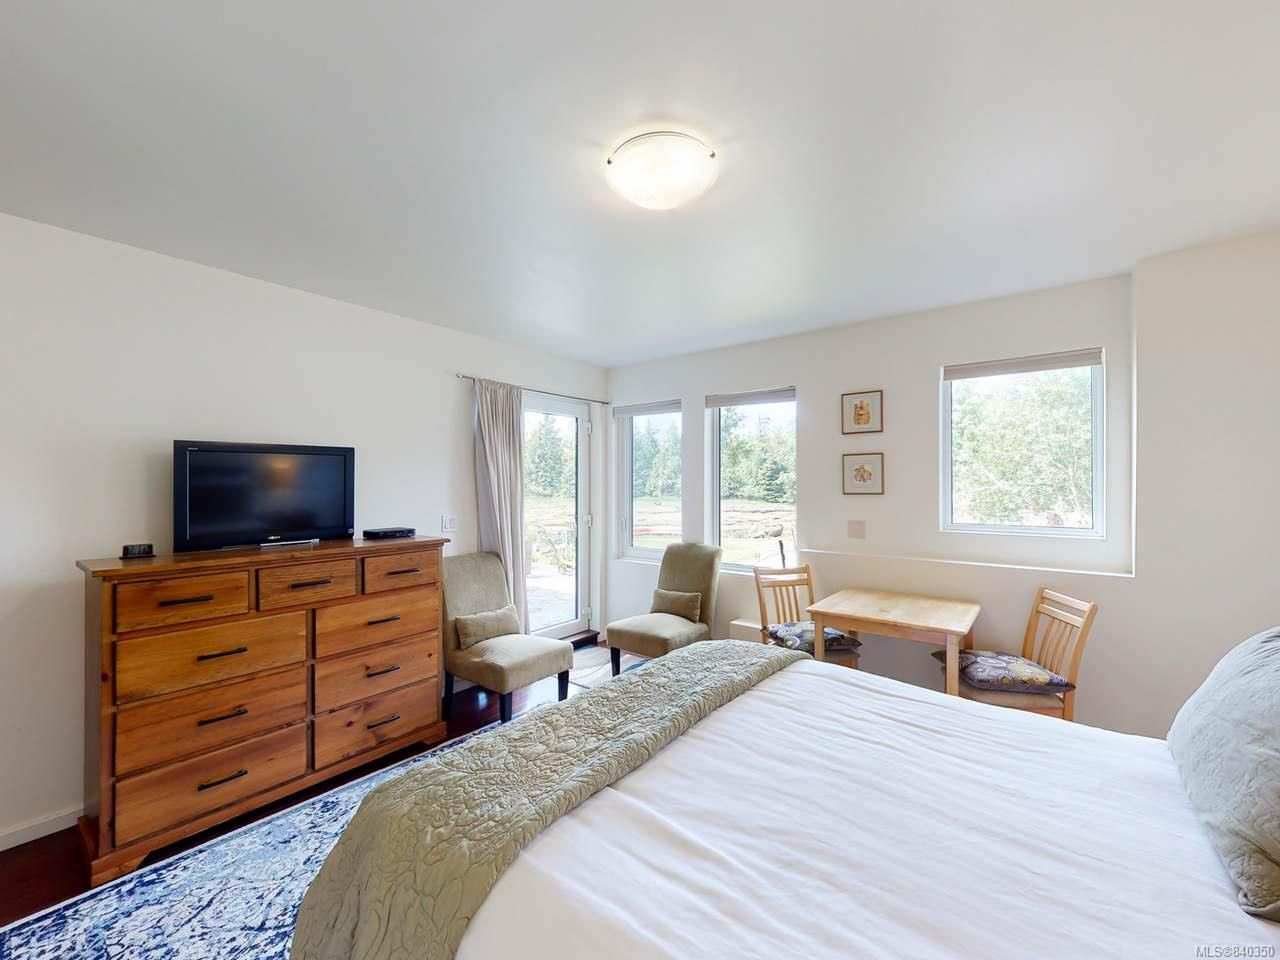 Photo 33: Photos: 1068 Helen Rd in UCLUELET: PA Ucluelet House for sale (Port Alberni)  : MLS®# 840350